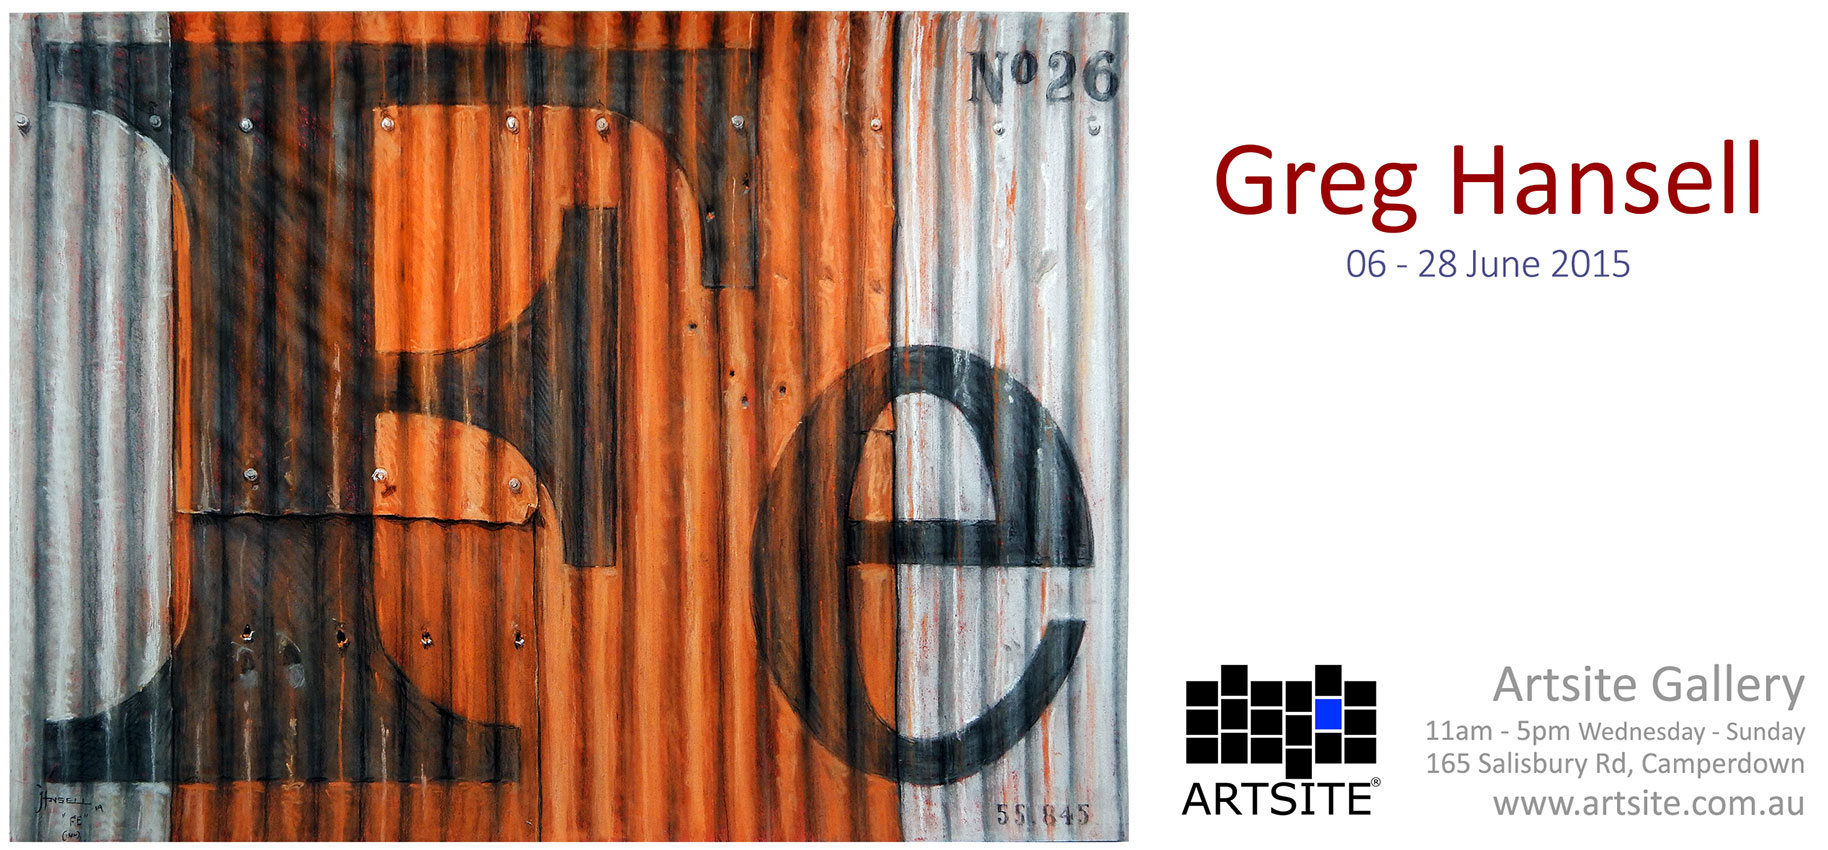 View Exhibition at Artsite Gallery. 06 - 28 June 2015: Greg Hansell - Earth Pastels